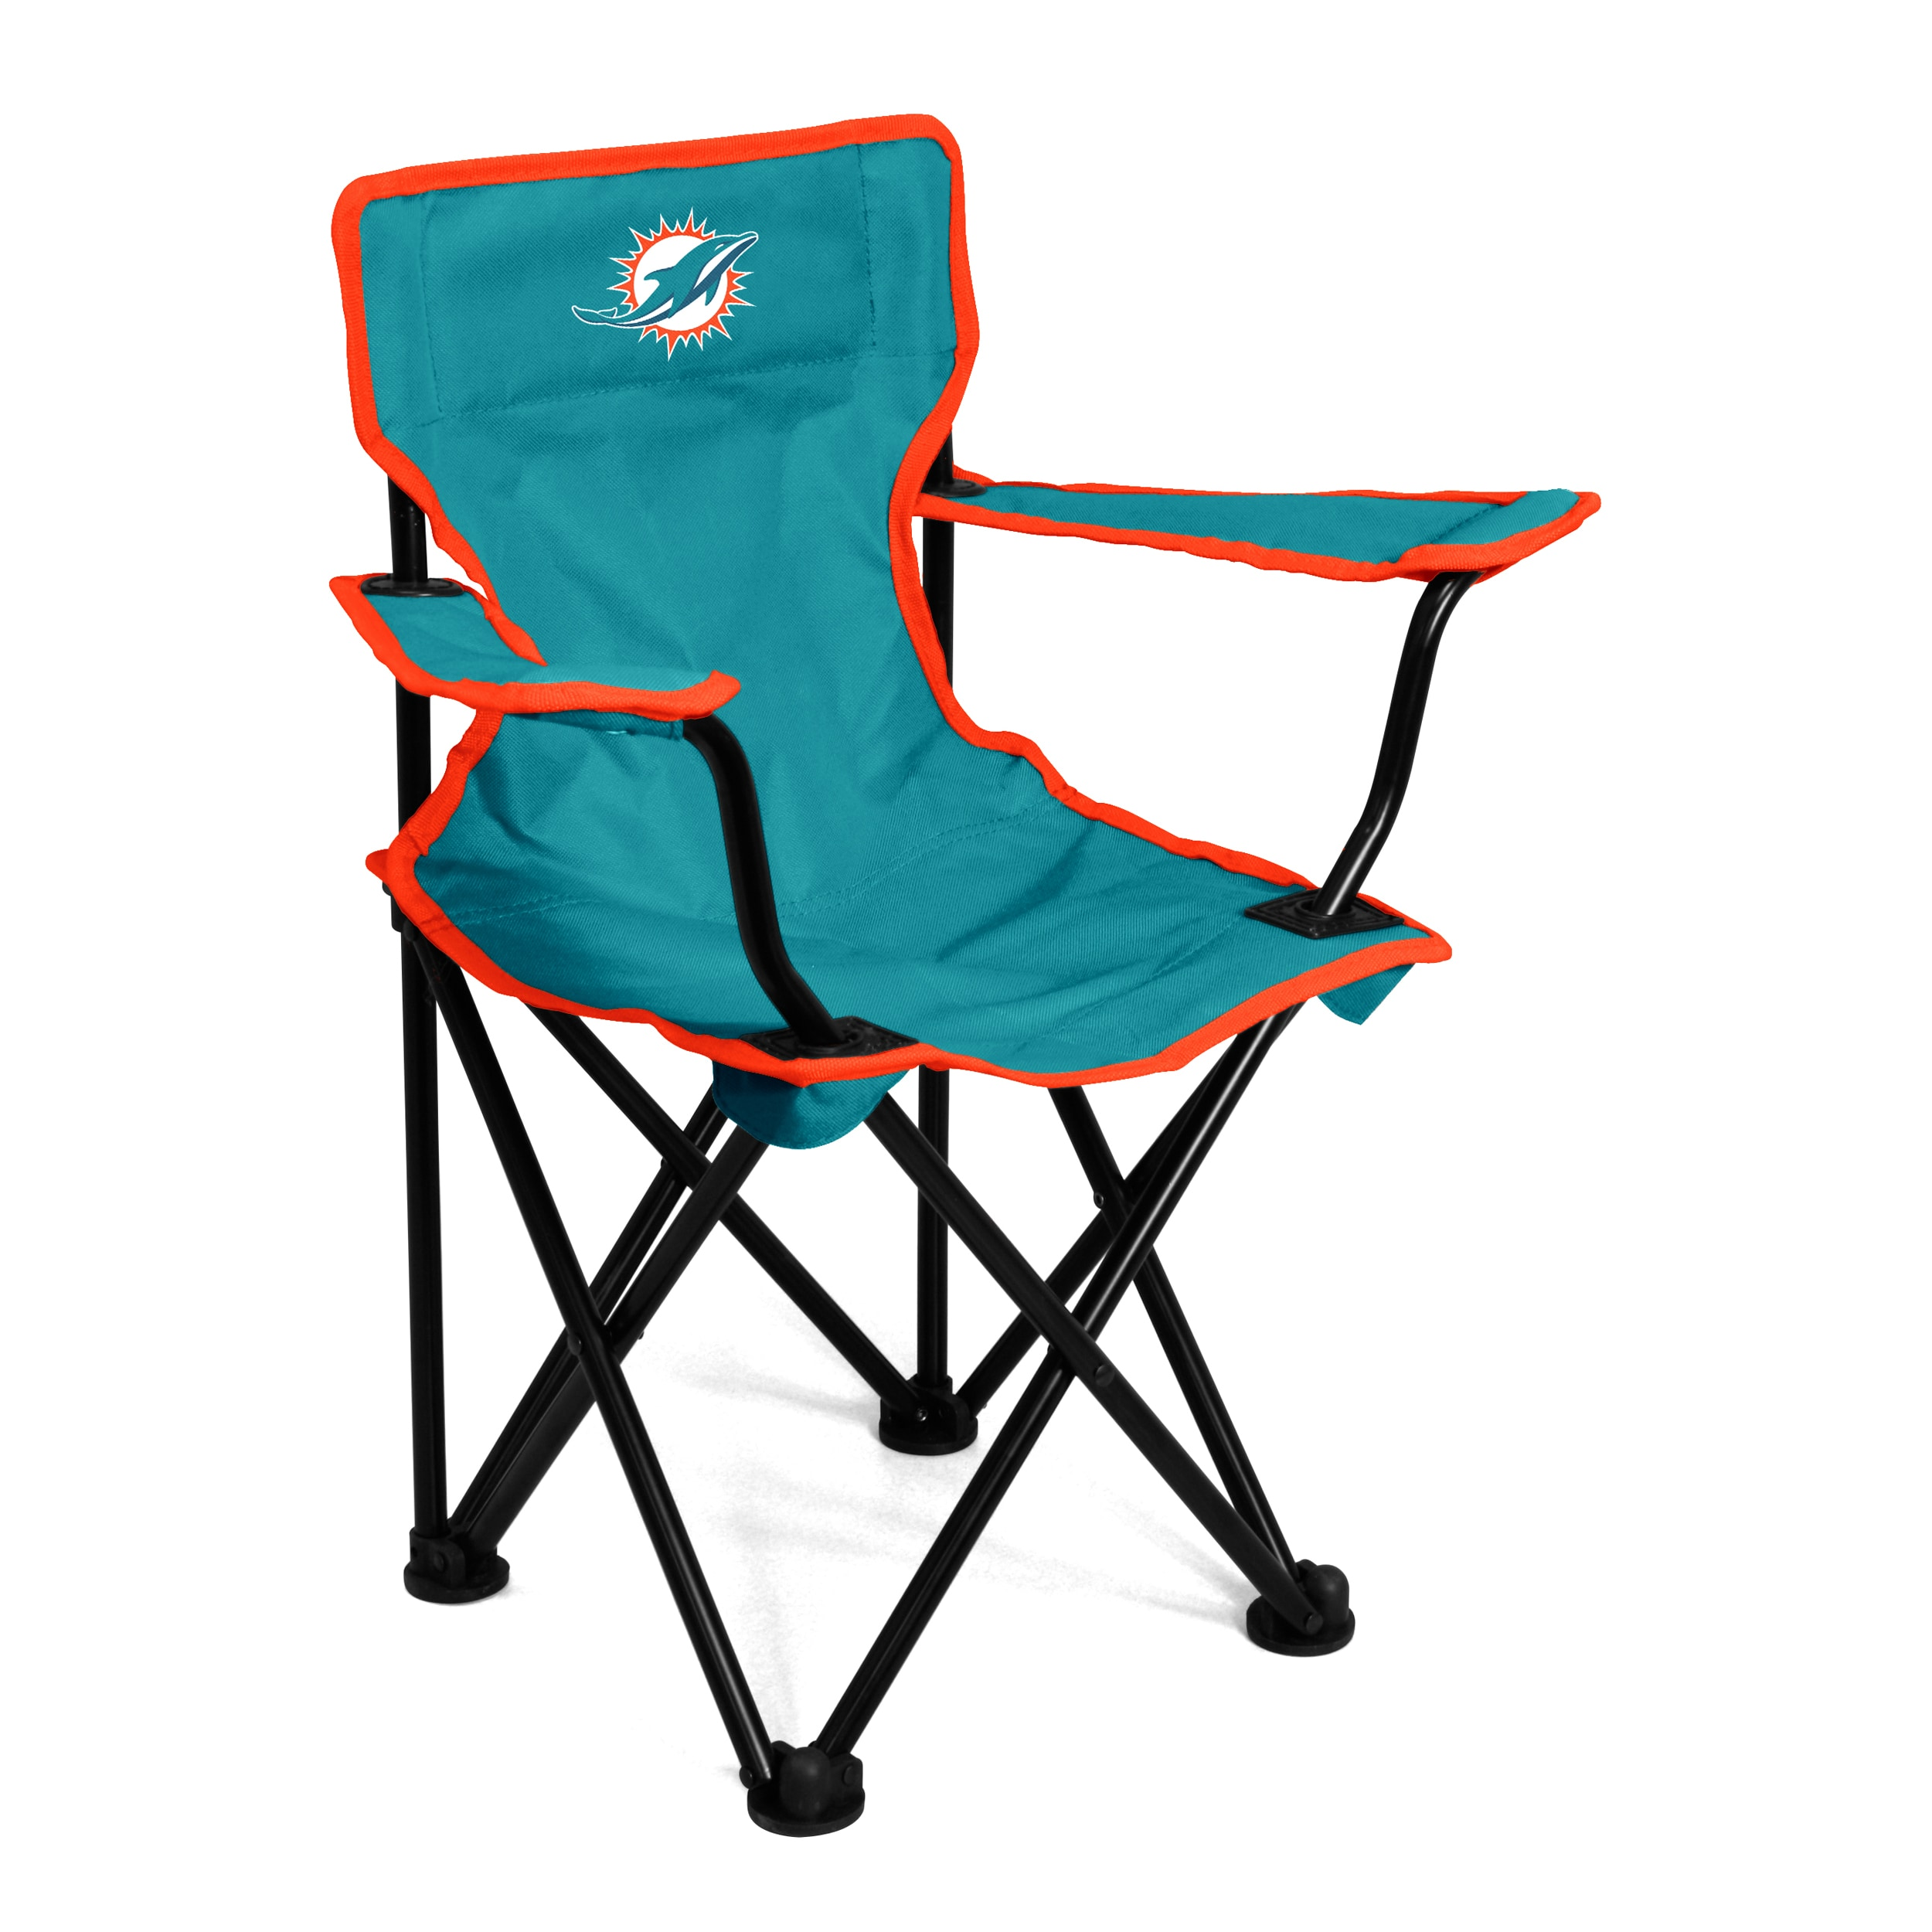 Miami Dolphins Toddler Tailgate Chair - Aqua